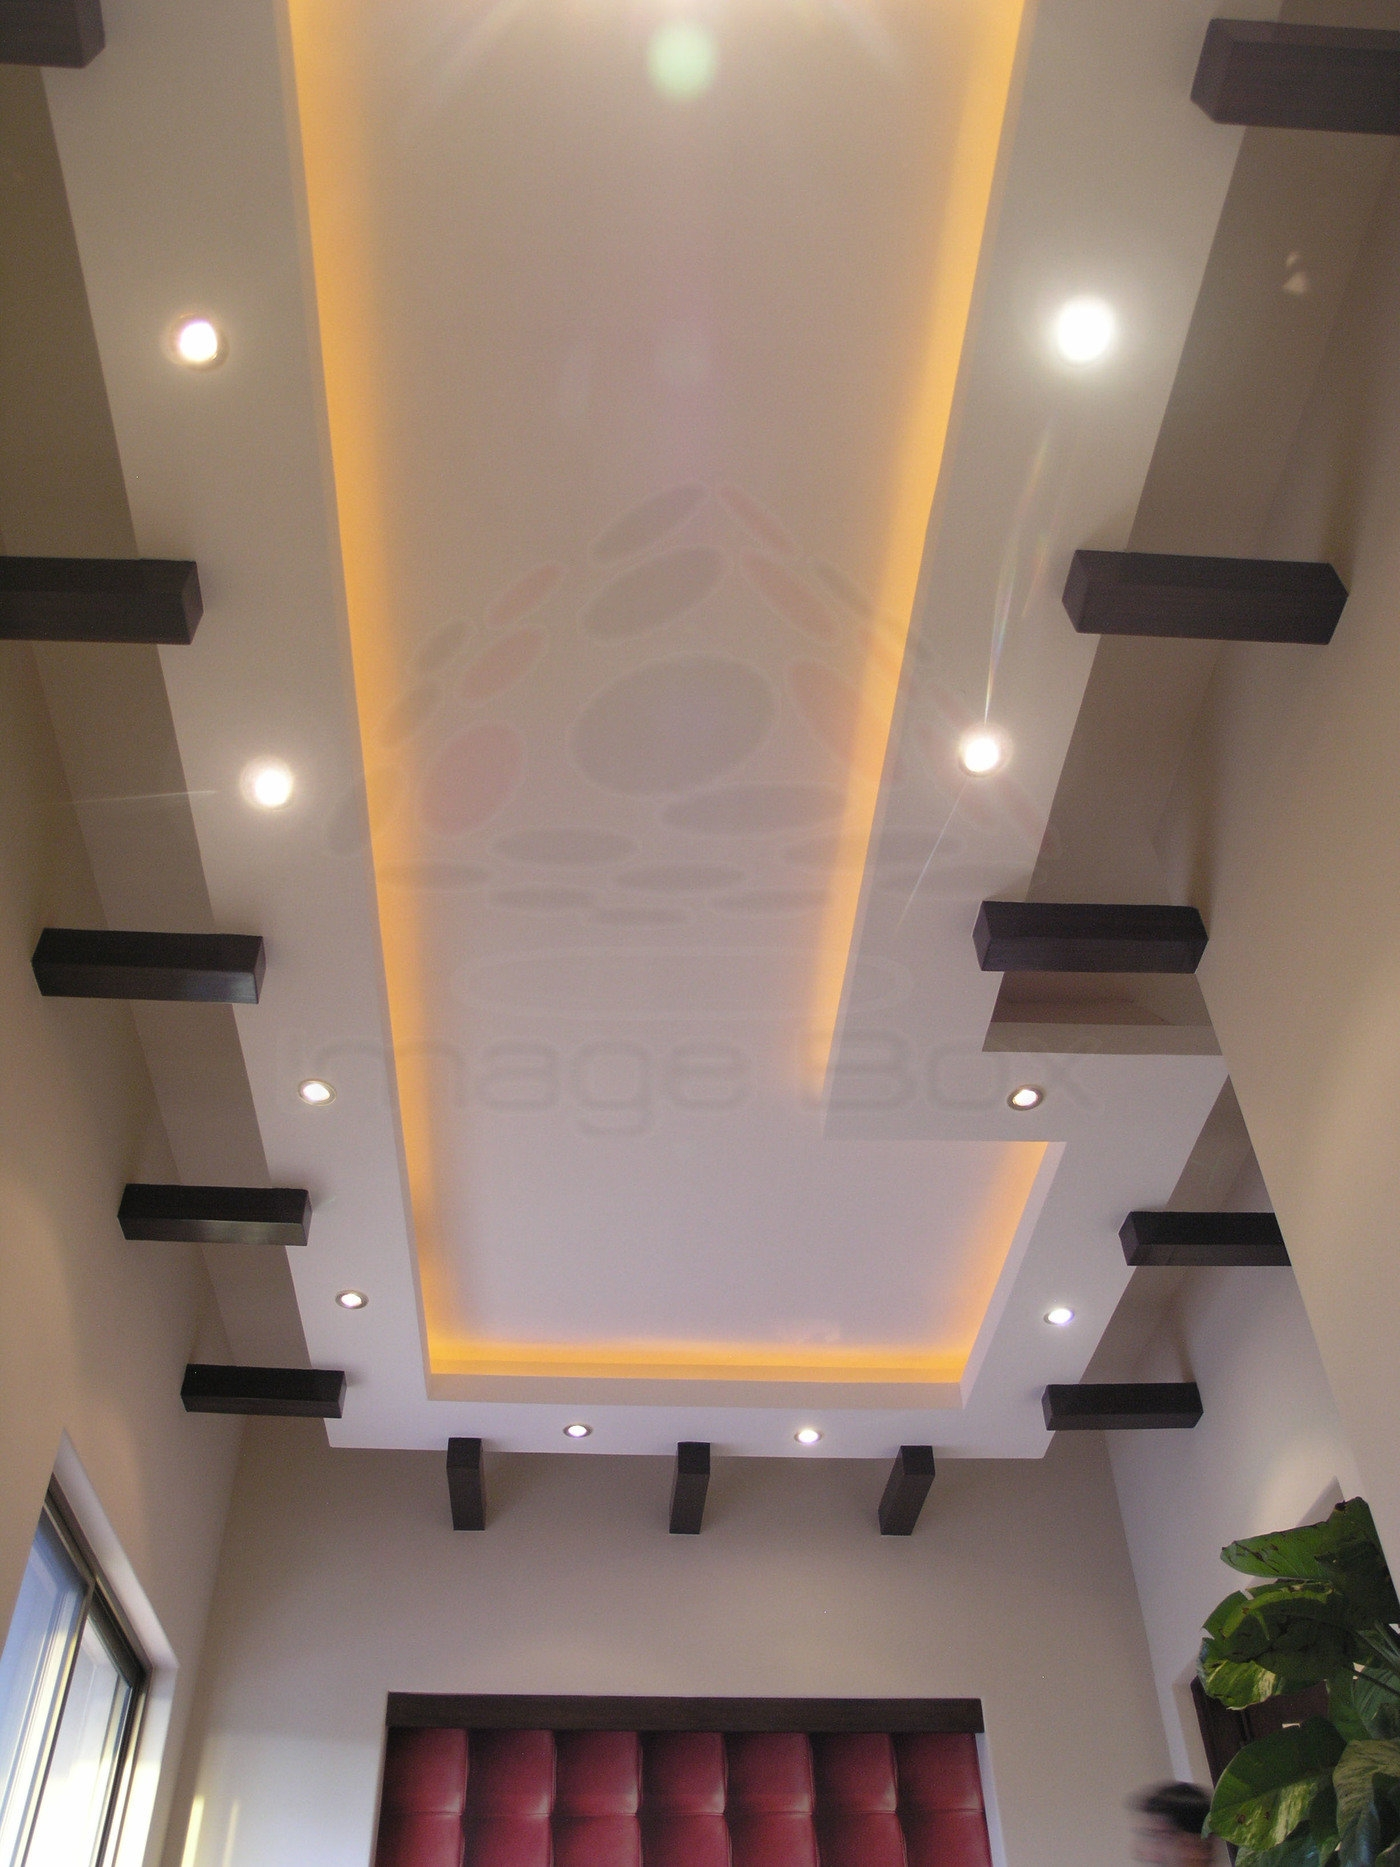 Masood Majeed Khan House By Image Box At Coroflot Com   Ceiling Design For Stairs Area   Wall Light   Reception   Internal Staircase Wall   Interior   Show Room